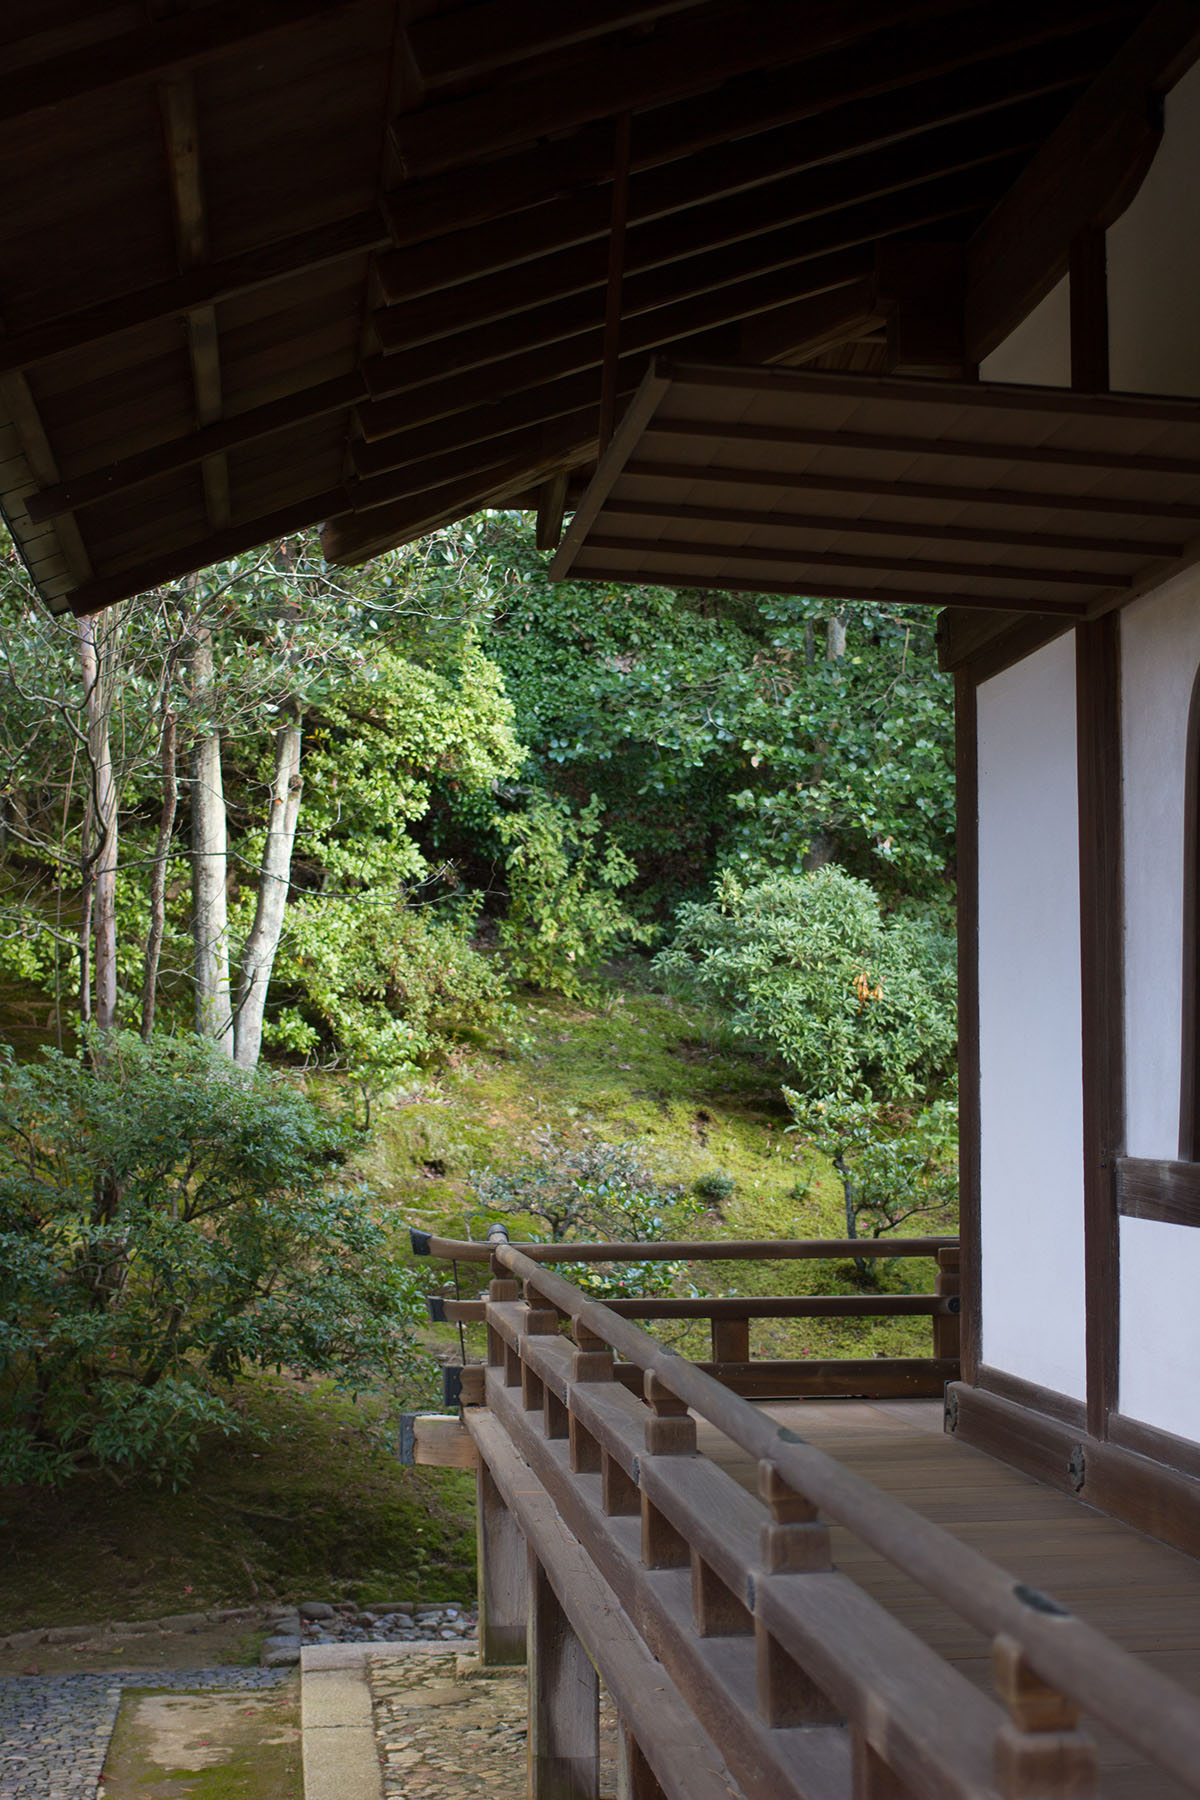 Window in tea pavilion at Katsura Imperial Villa - Kyoto